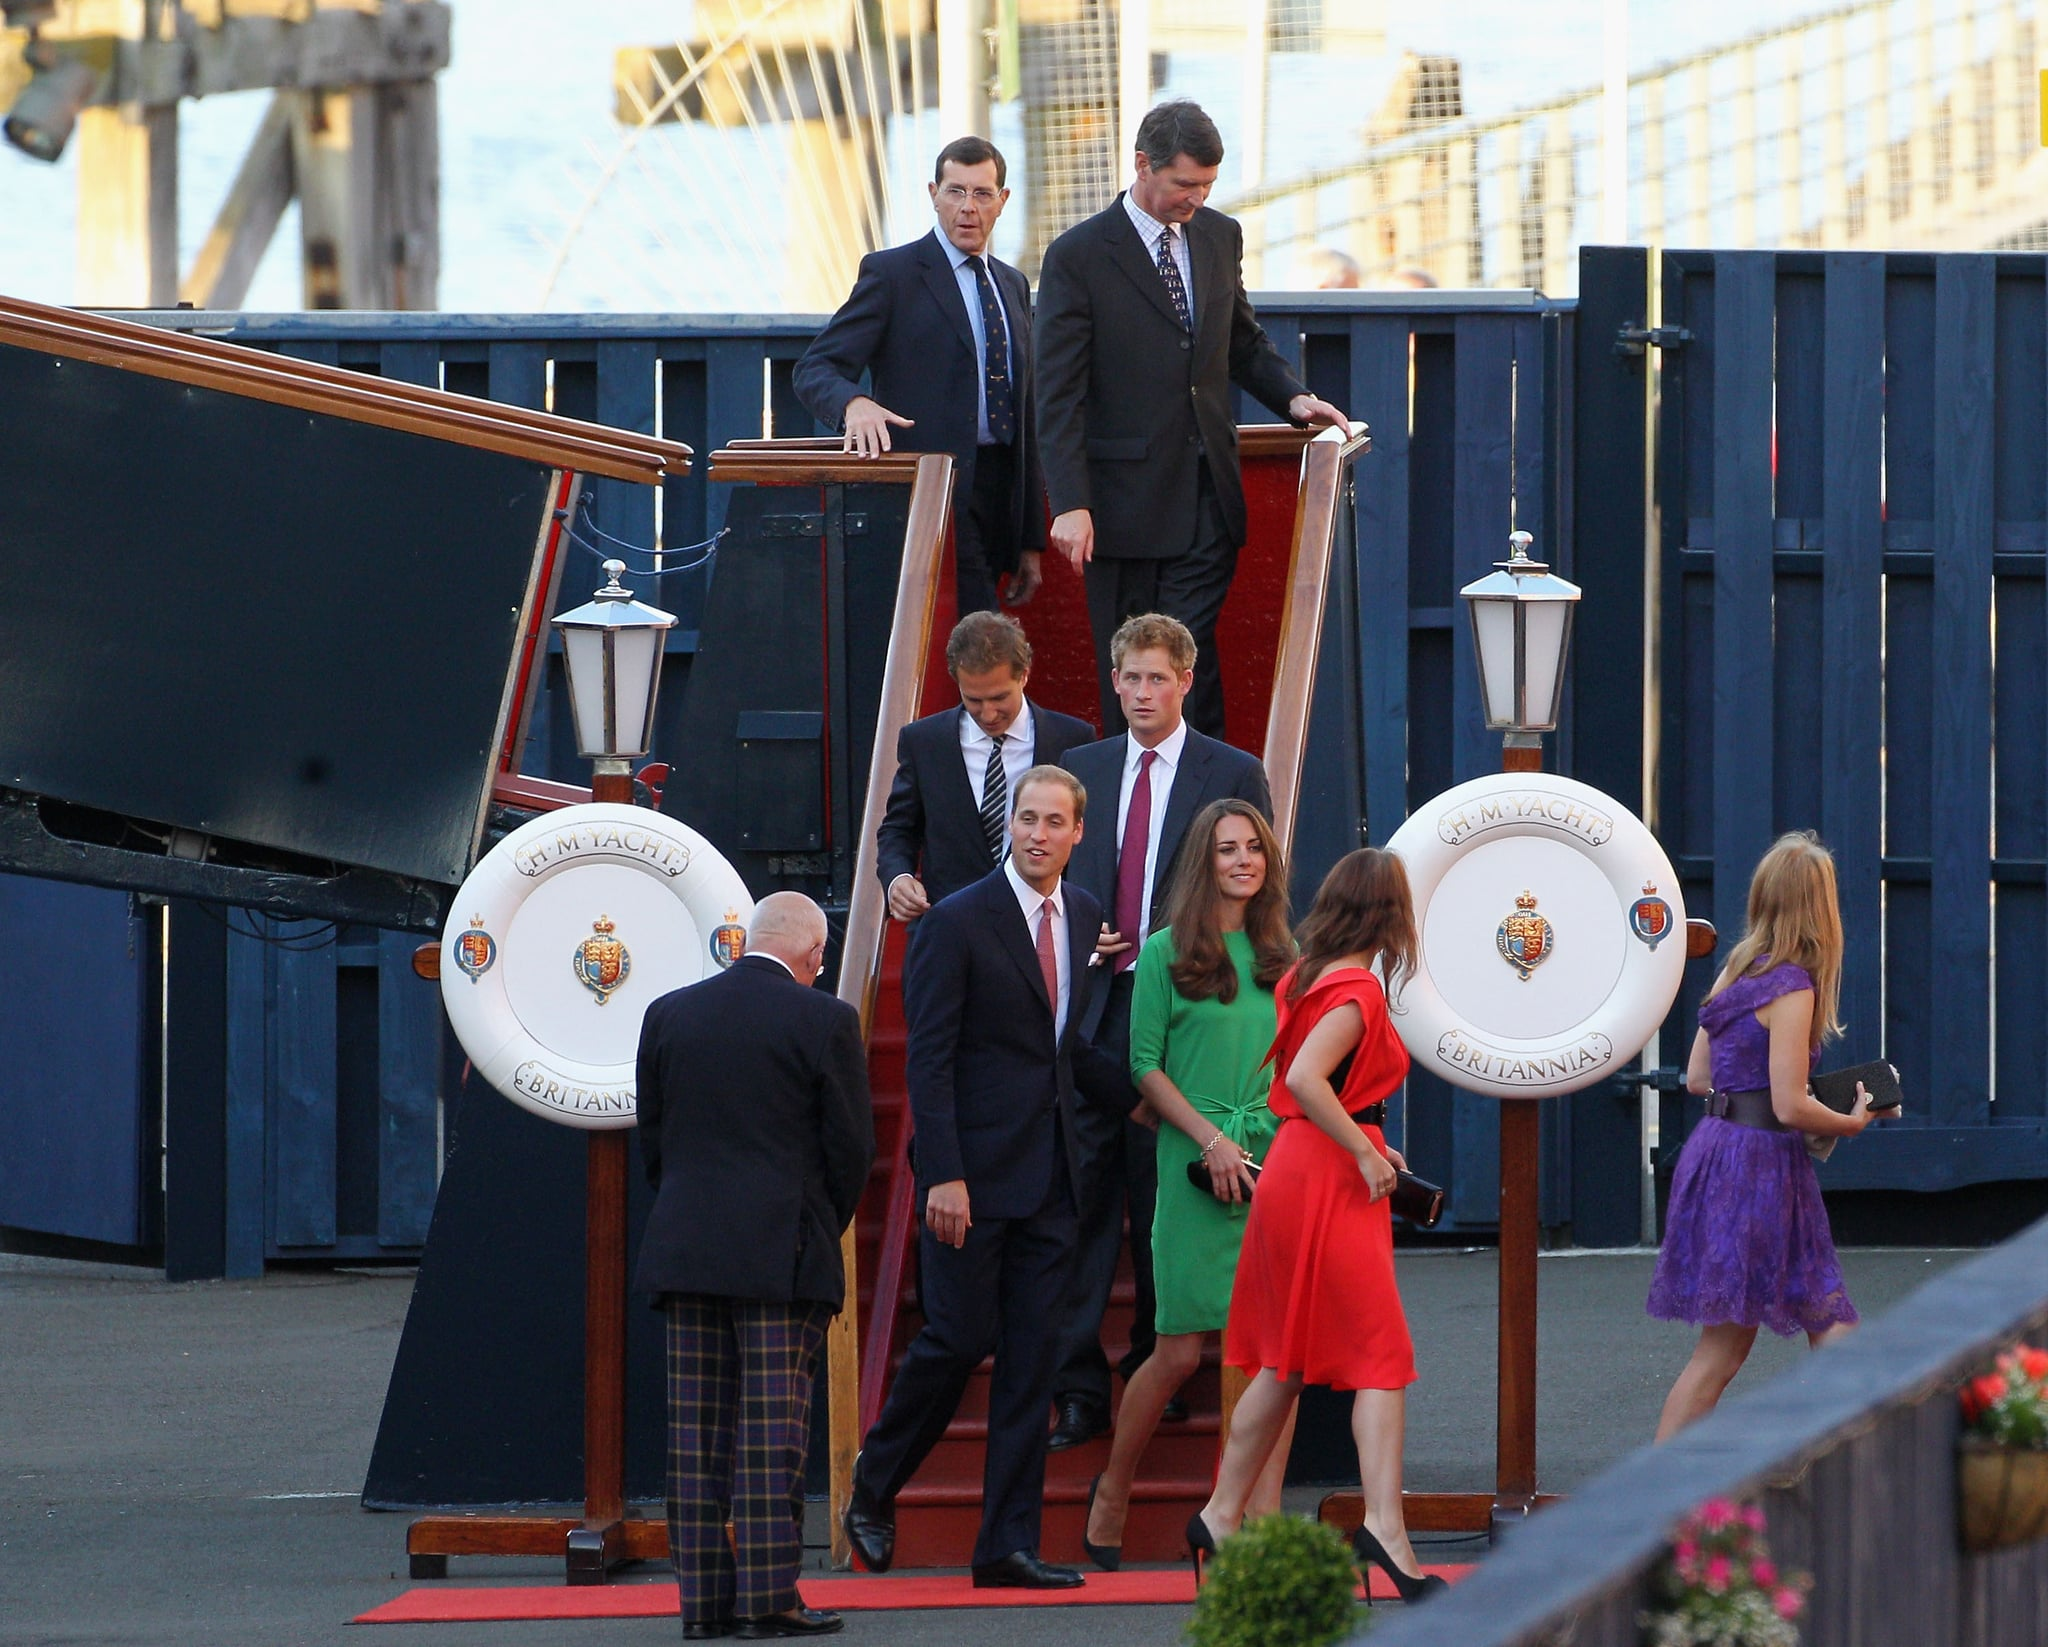 Dave Clark, Prince Harry, Prince William, Kate Middleton, Princess Eugenie, and Princess Beatrice leave the Royal Yacht Britannia.